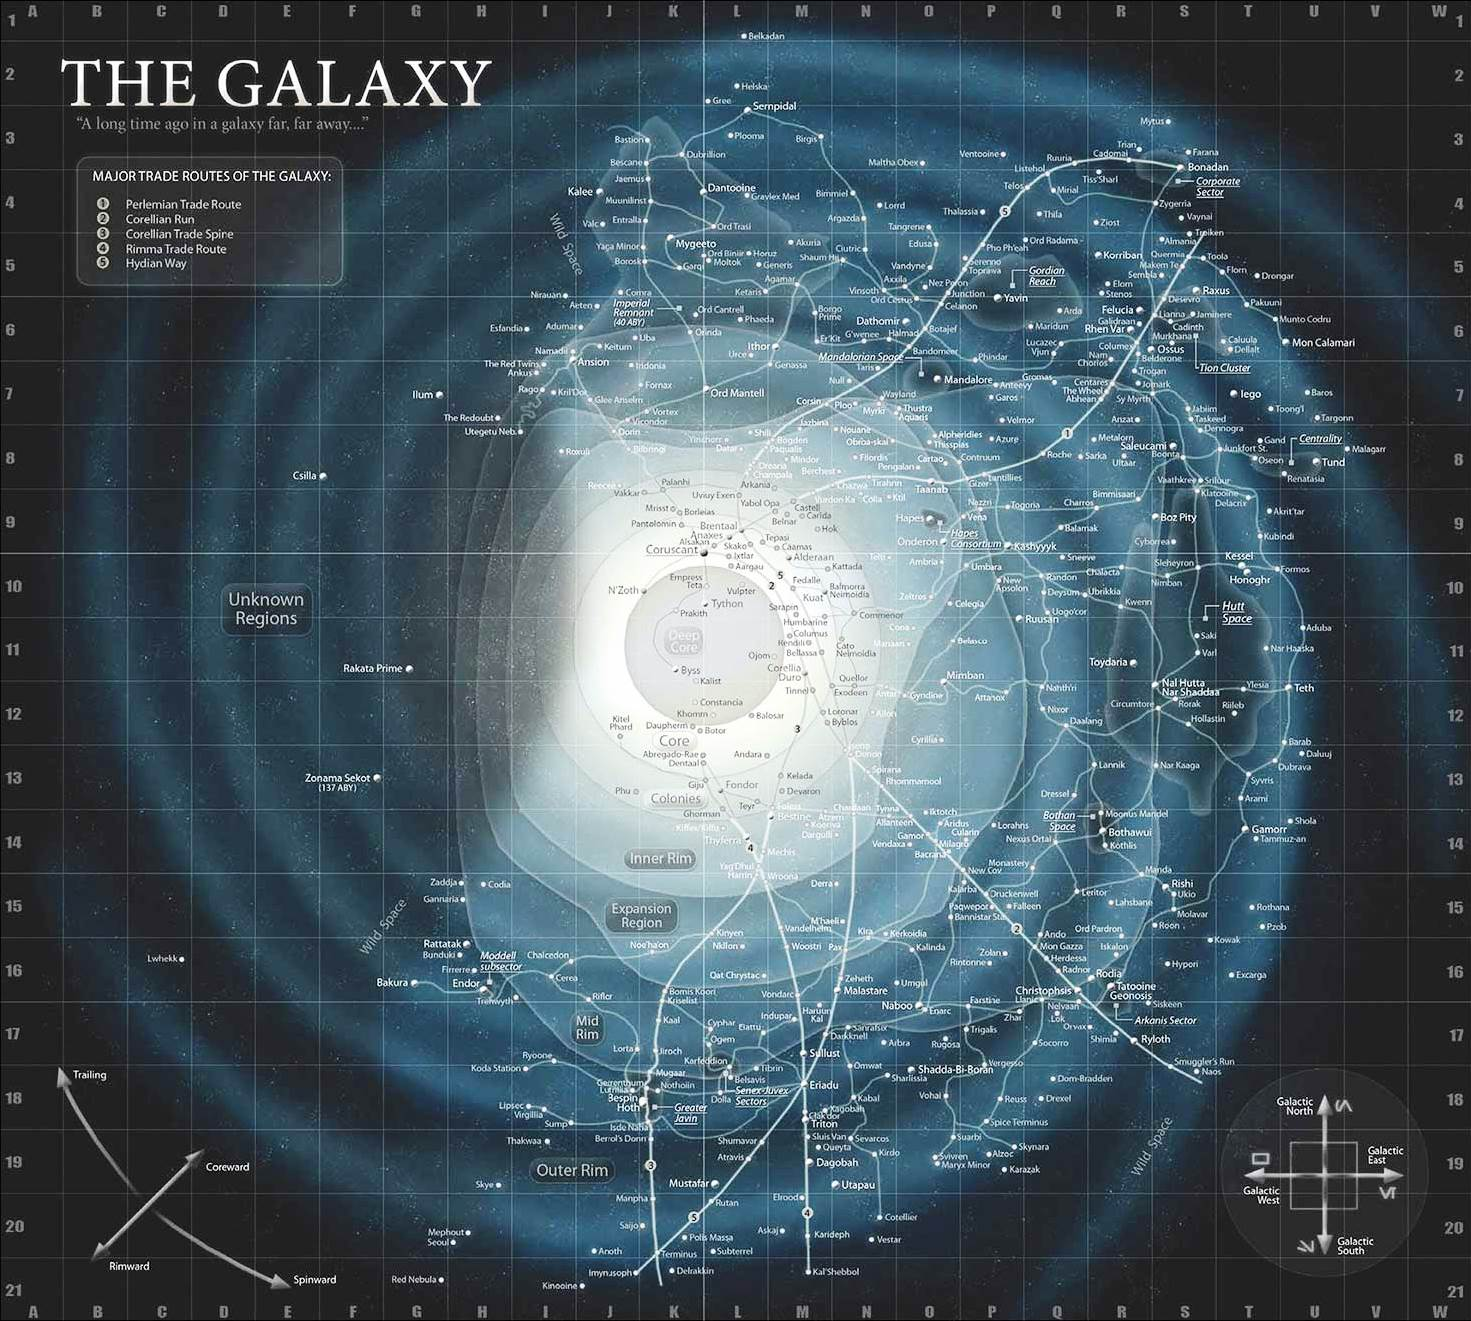 Star Wars Map Of Galaxy The galaxy | Wookieepedia | FANDOM powered by Wikia Star Wars Map Of Galaxy